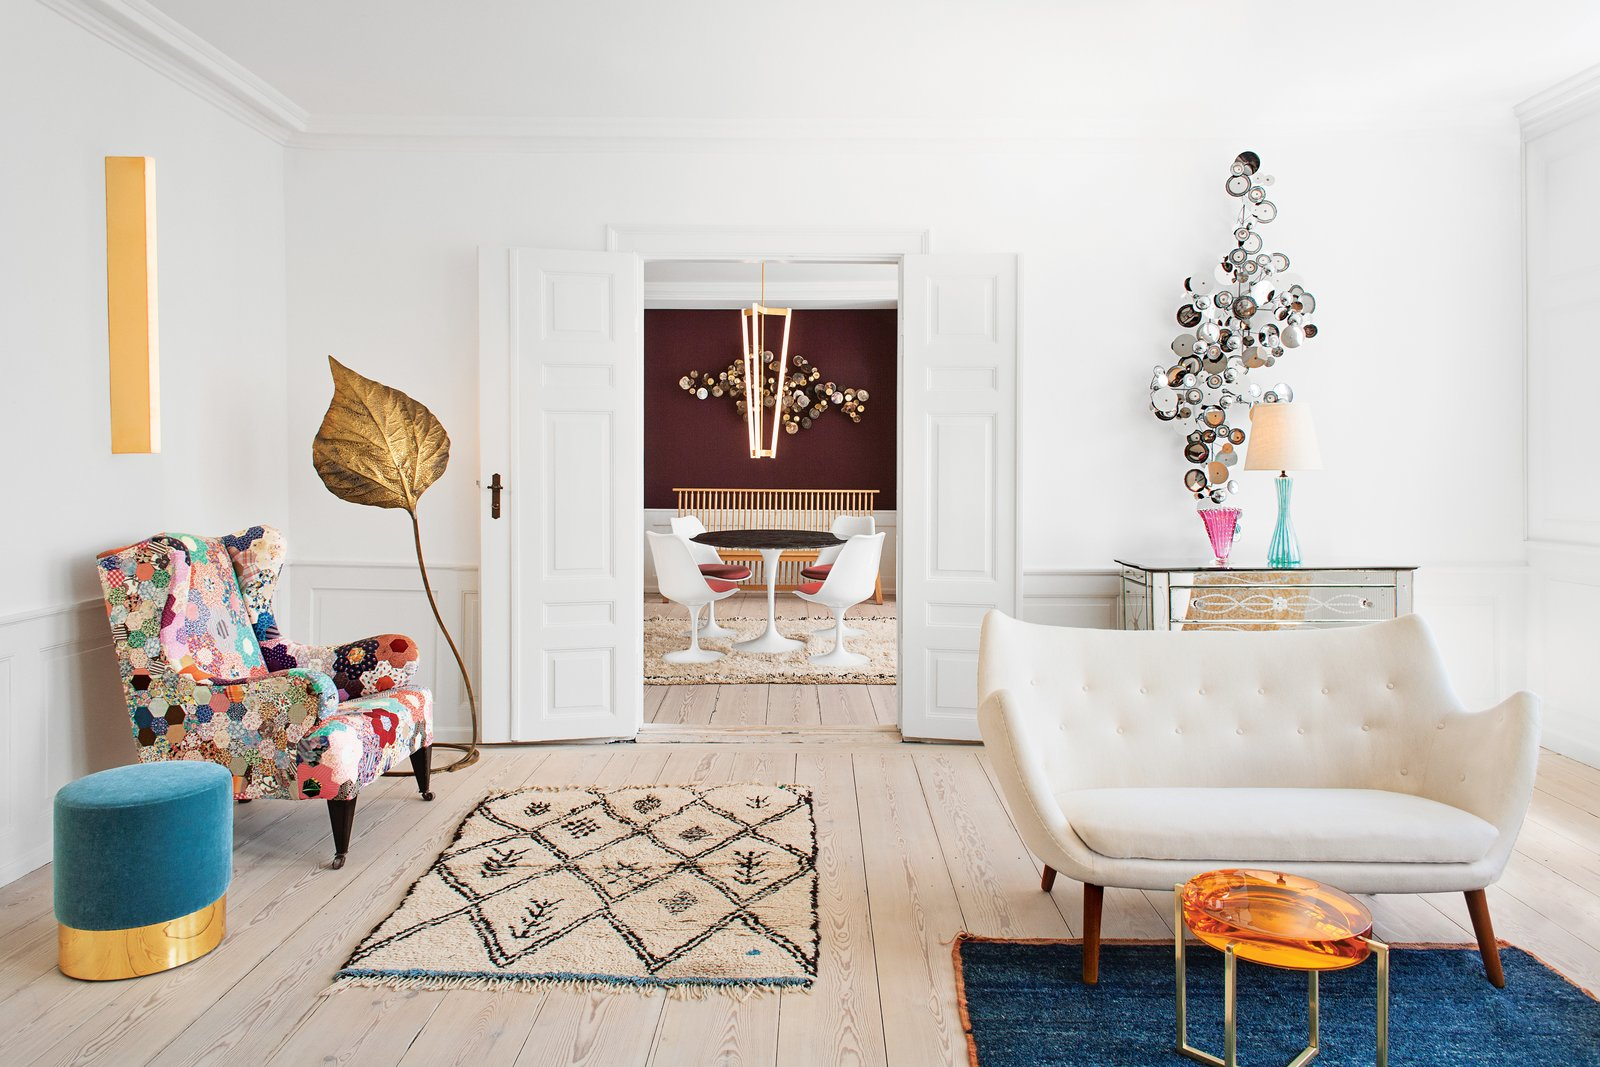 The front parlor is a visitor's first hint of the mix of furniture Tina Seidenfaden Busck has assembled for her showroom the Apartment. A pouffe from Azucena is matched with an array of vintage pieces: a Beni Ourain rug from Morocco, a mirrored chest of drawers from France, and a Finn Juhl Poet sofa. The next room houses a vintage Tulip table and chairs by Eero Saarinen and a Tube Chandelier by Michael Anastassiades. Photos courtesy the Apartment.  100+ Best Modern Seating Designs by Dwell from A Curated Apartment Turned Showroom in Copenhagen